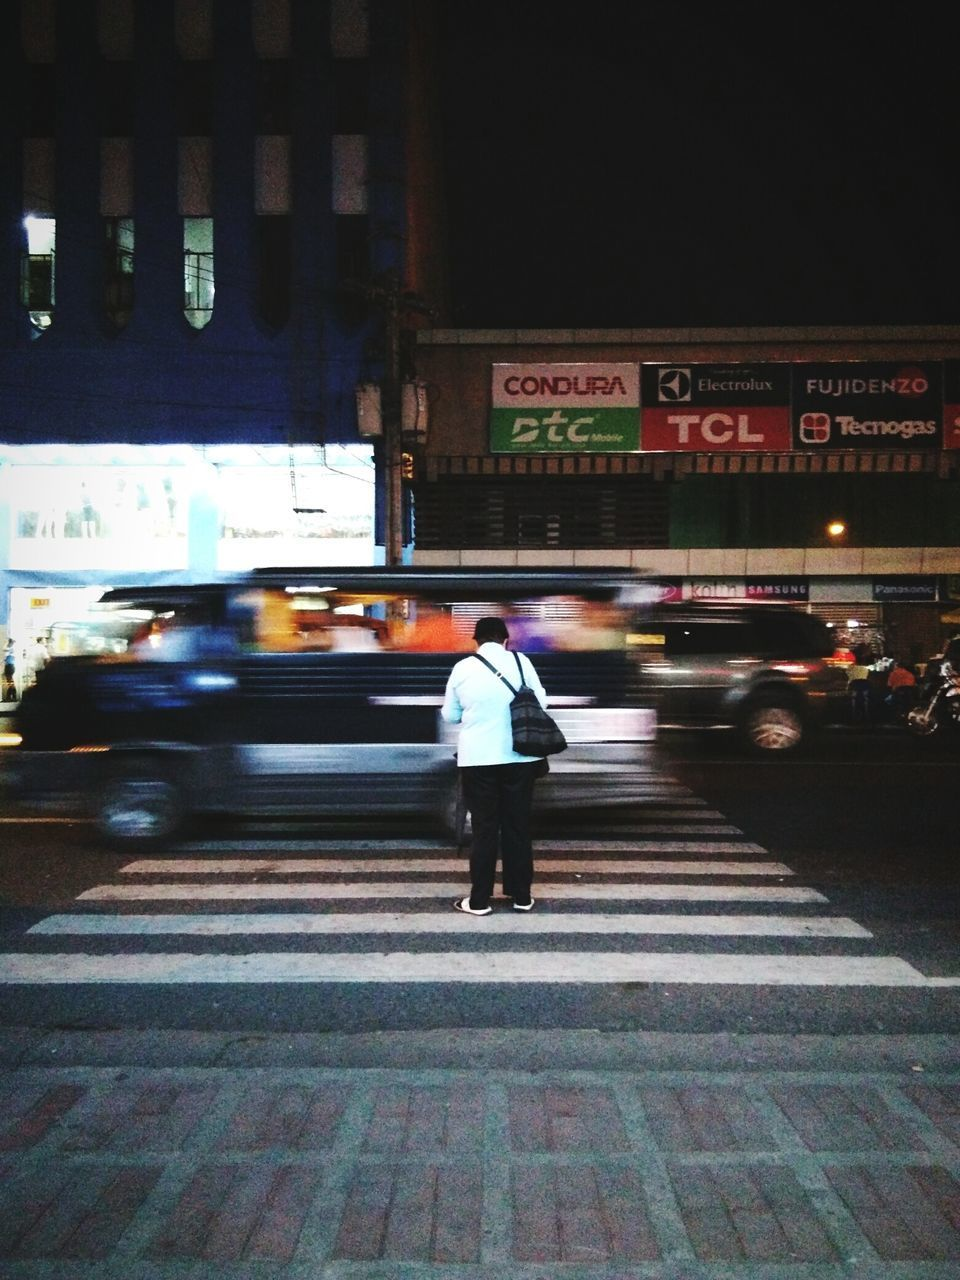 transportation, blurred motion, text, illuminated, architecture, real people, men, street, city, one person, city life, built structure, building exterior, road, night, full length, land vehicle, communication, car, walking, rear view, outdoors, motion, standing, lifestyles, one man only, adult, people